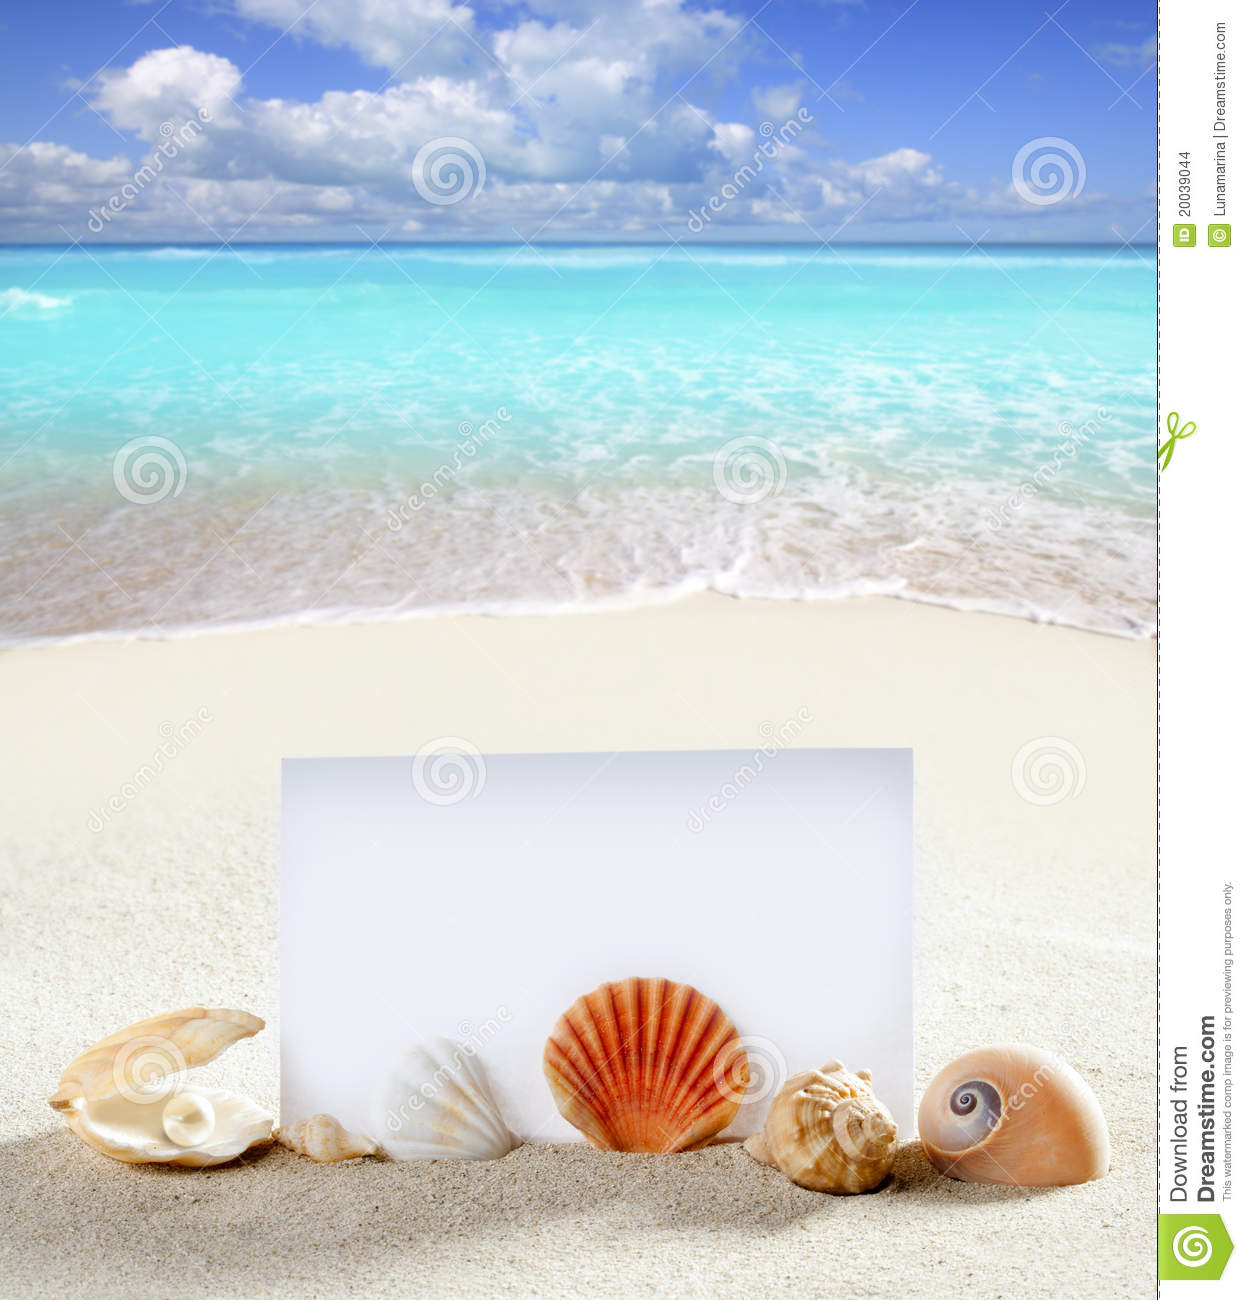 Tropical Backgrounds Clipart PC Most